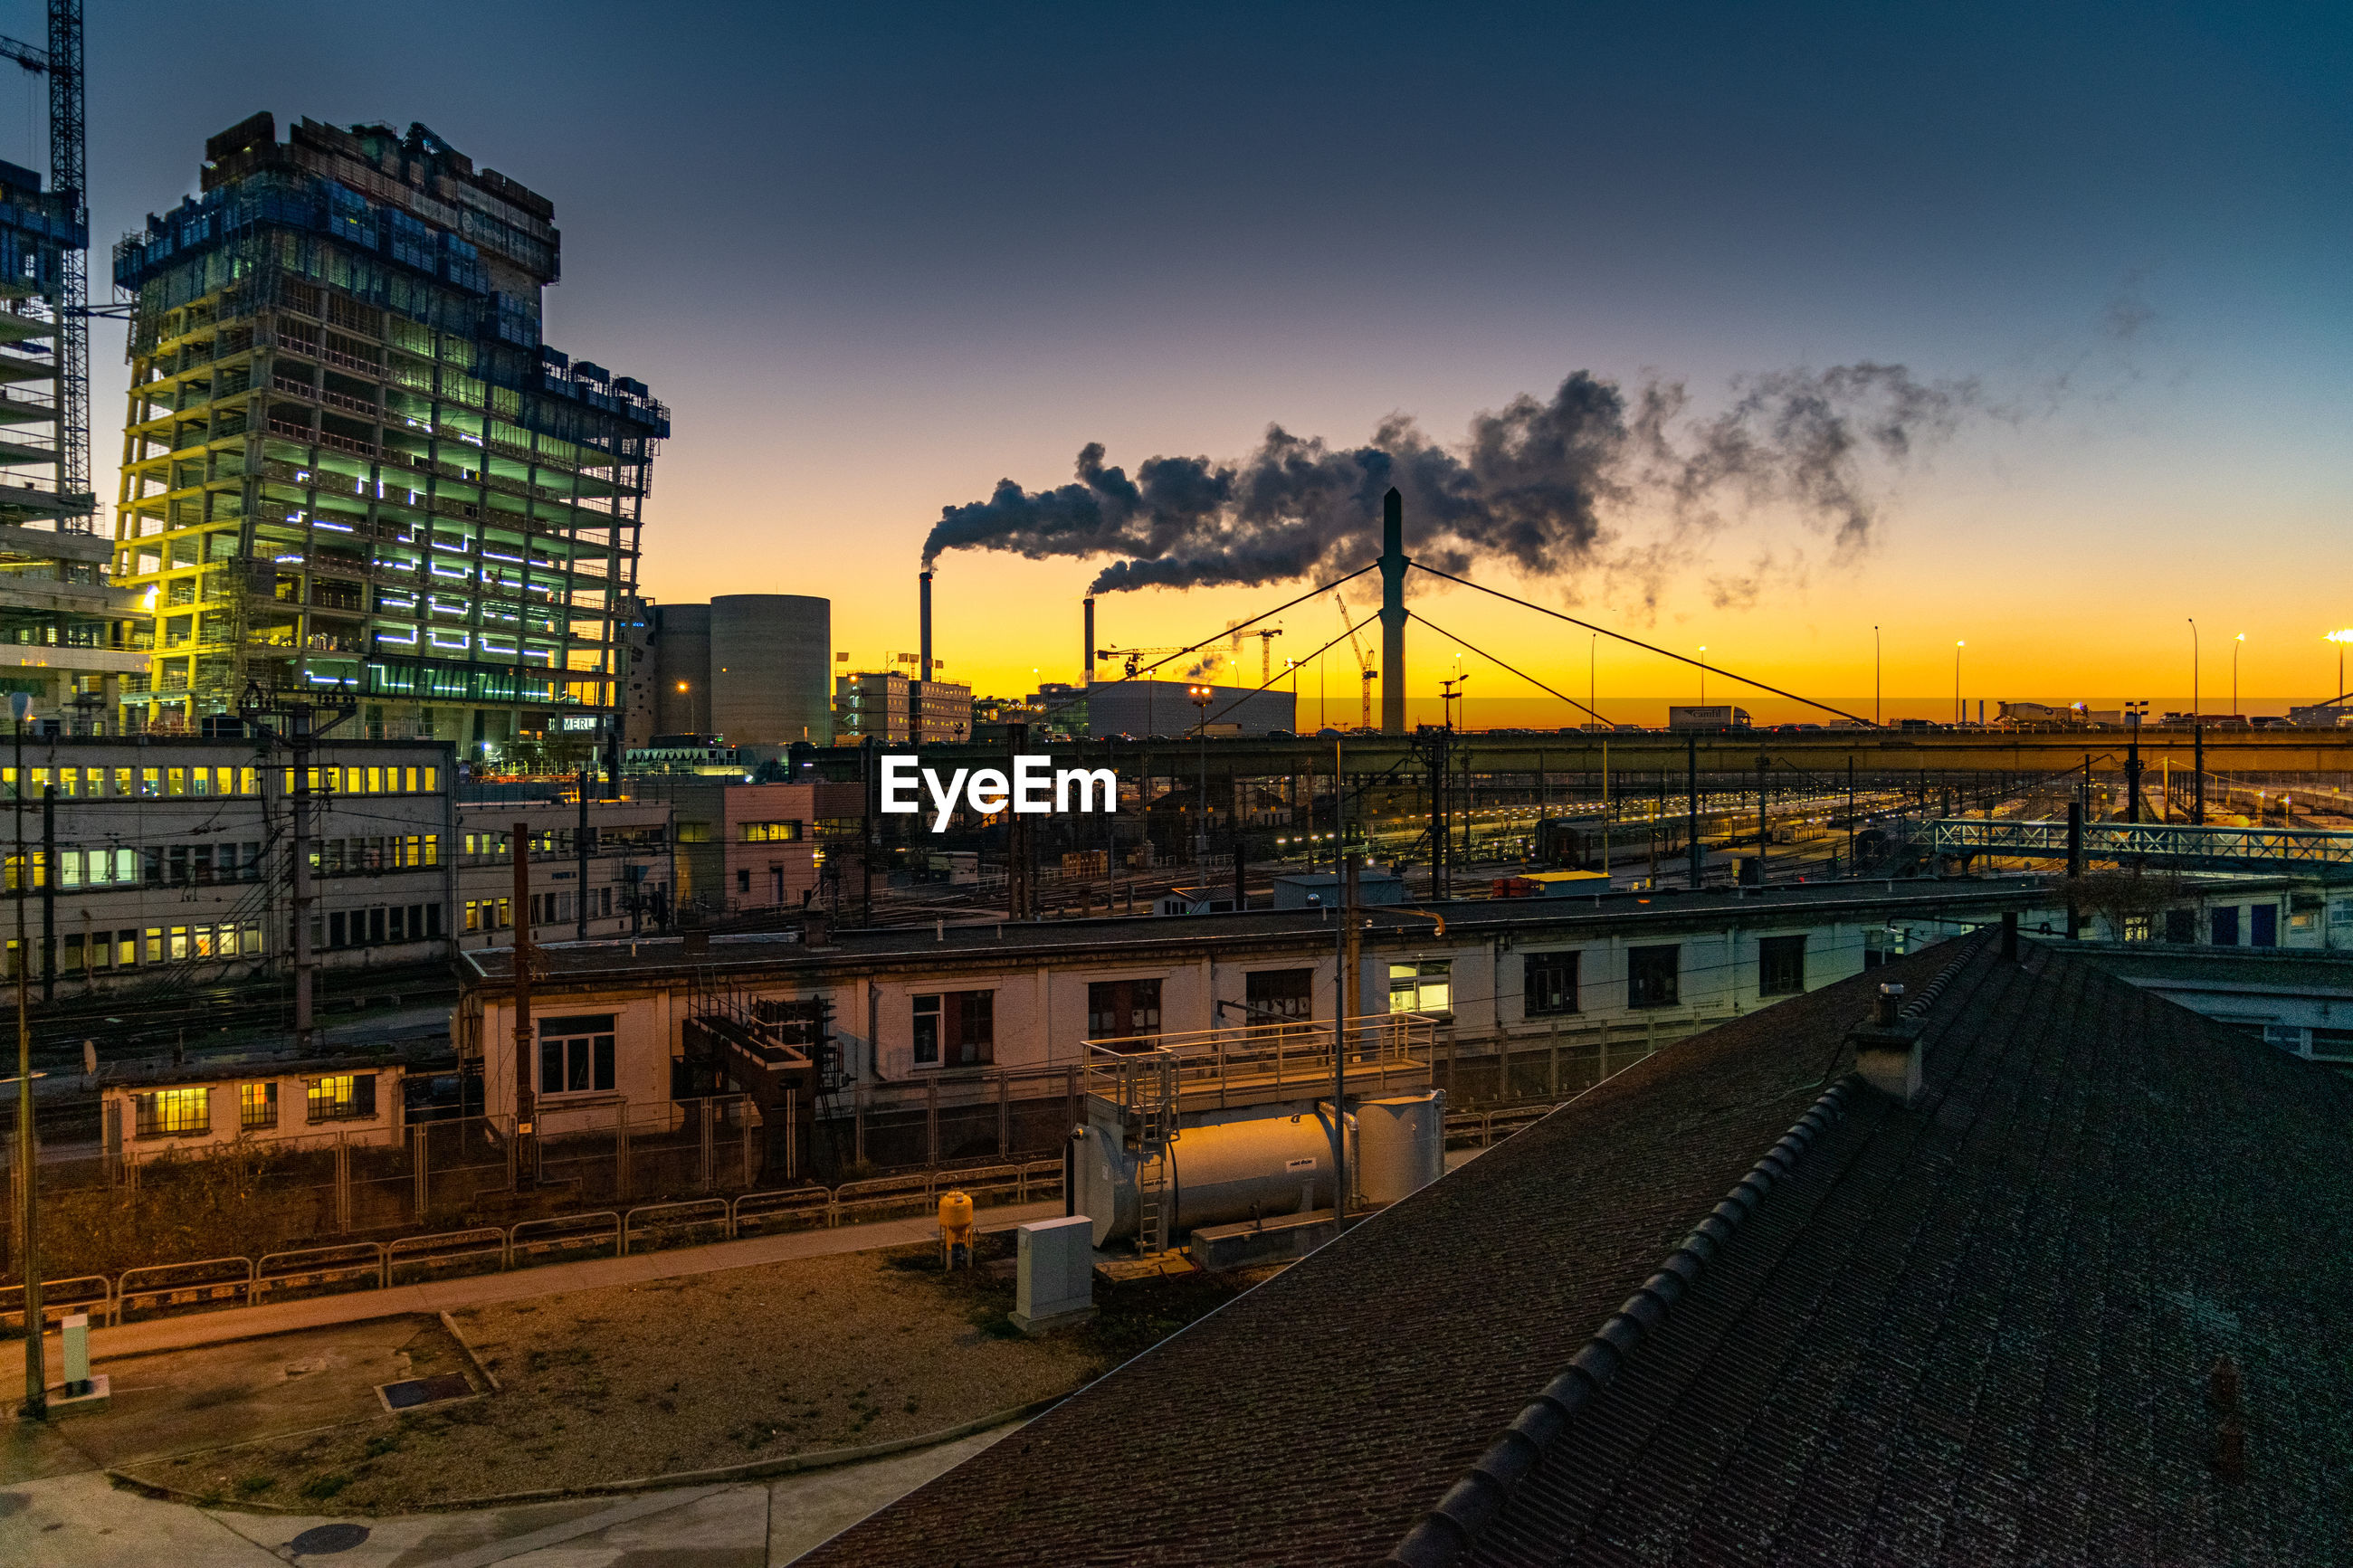 RAILROAD TRACKS BY BUILDINGS AGAINST SKY AT SUNSET